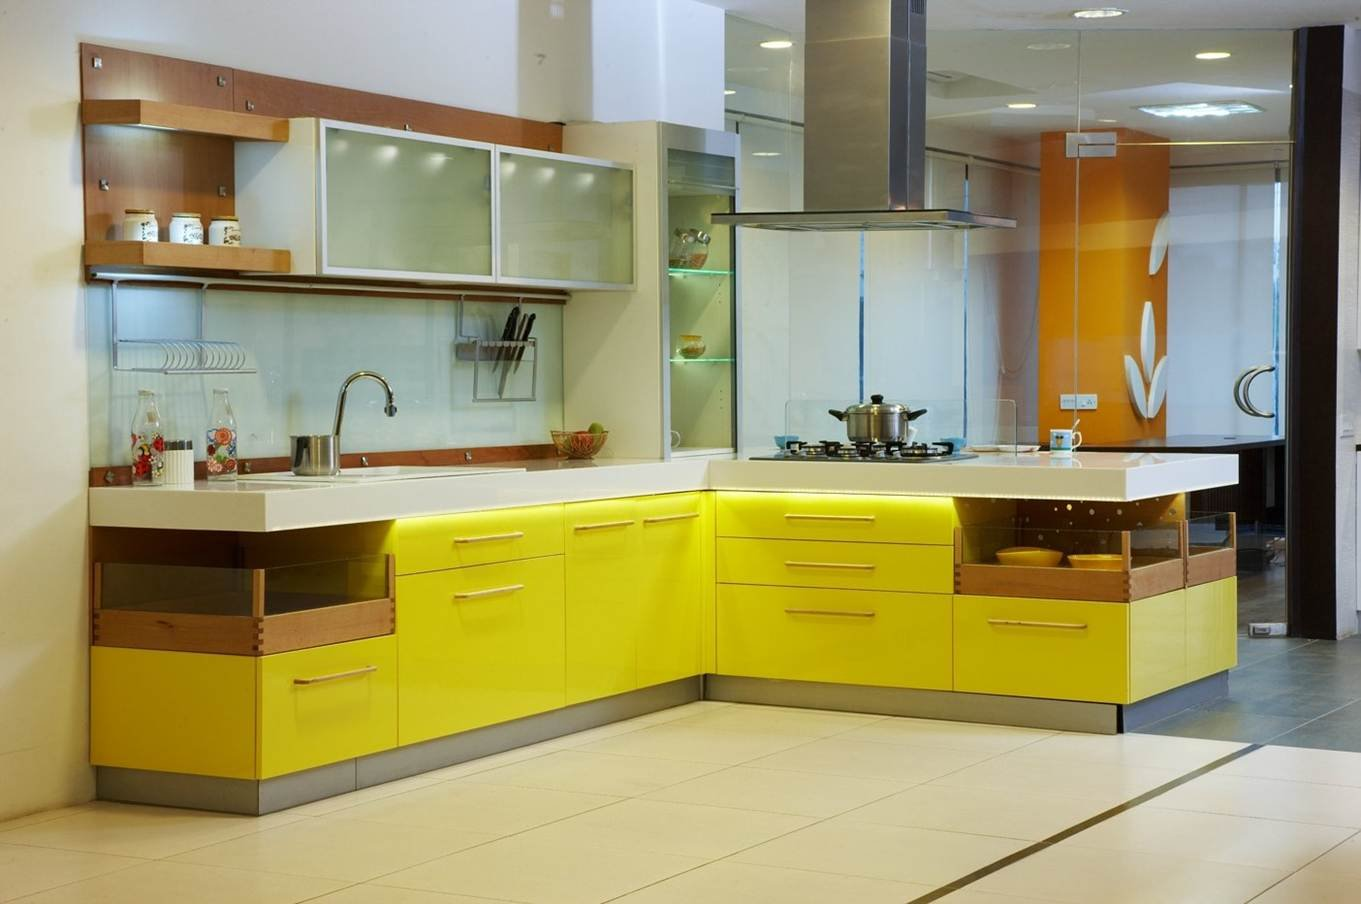 Designs Of Modular Kitchen Modular Kitchen Outlet In Delhi Noida Gurgaon Kitchen Signature